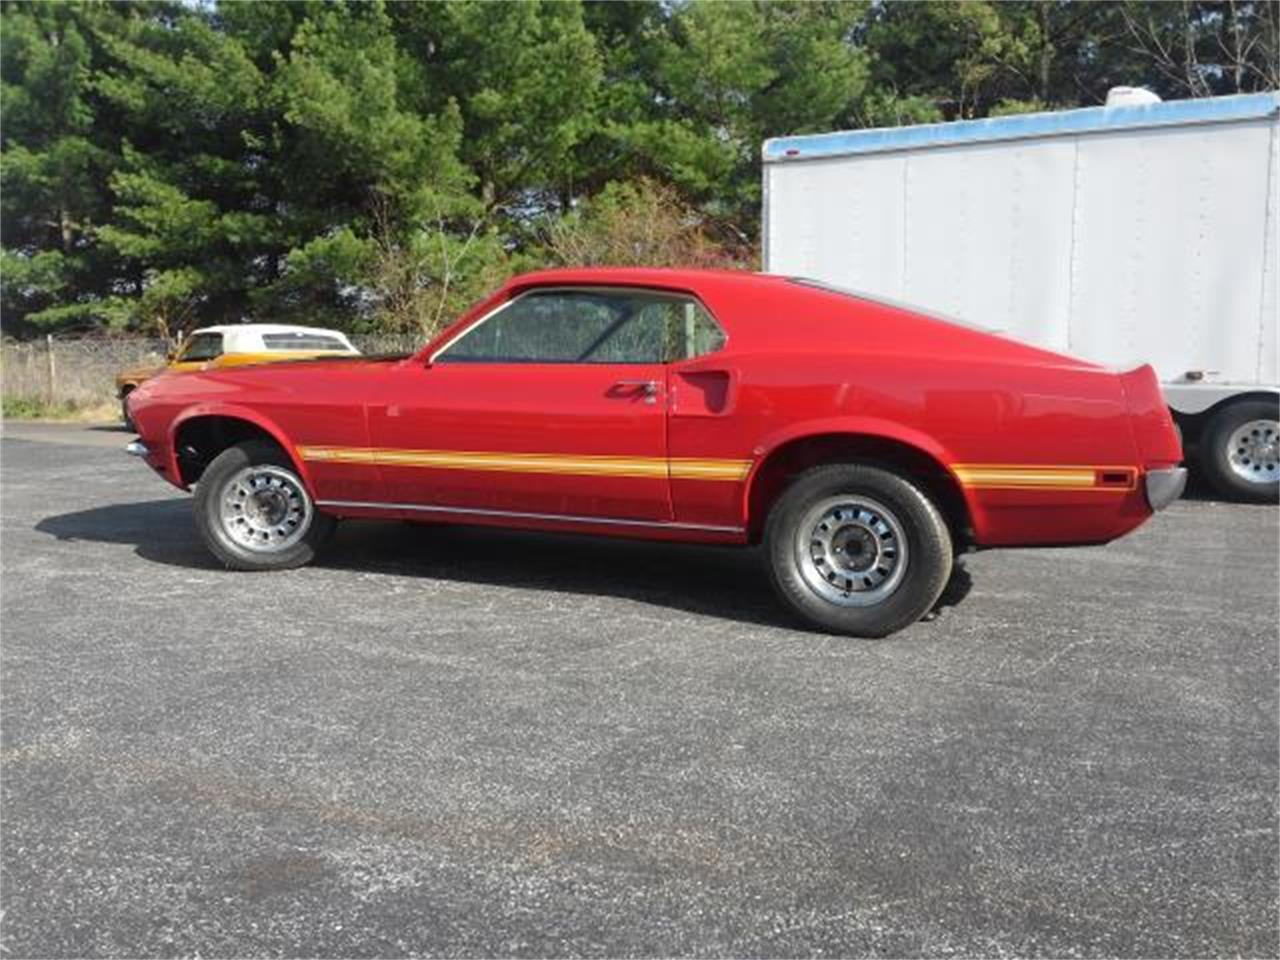 Large Picture of Classic '69 Ford Mustang located in Ohio - $119,900.00 Offered by Benza Motors - L1IN